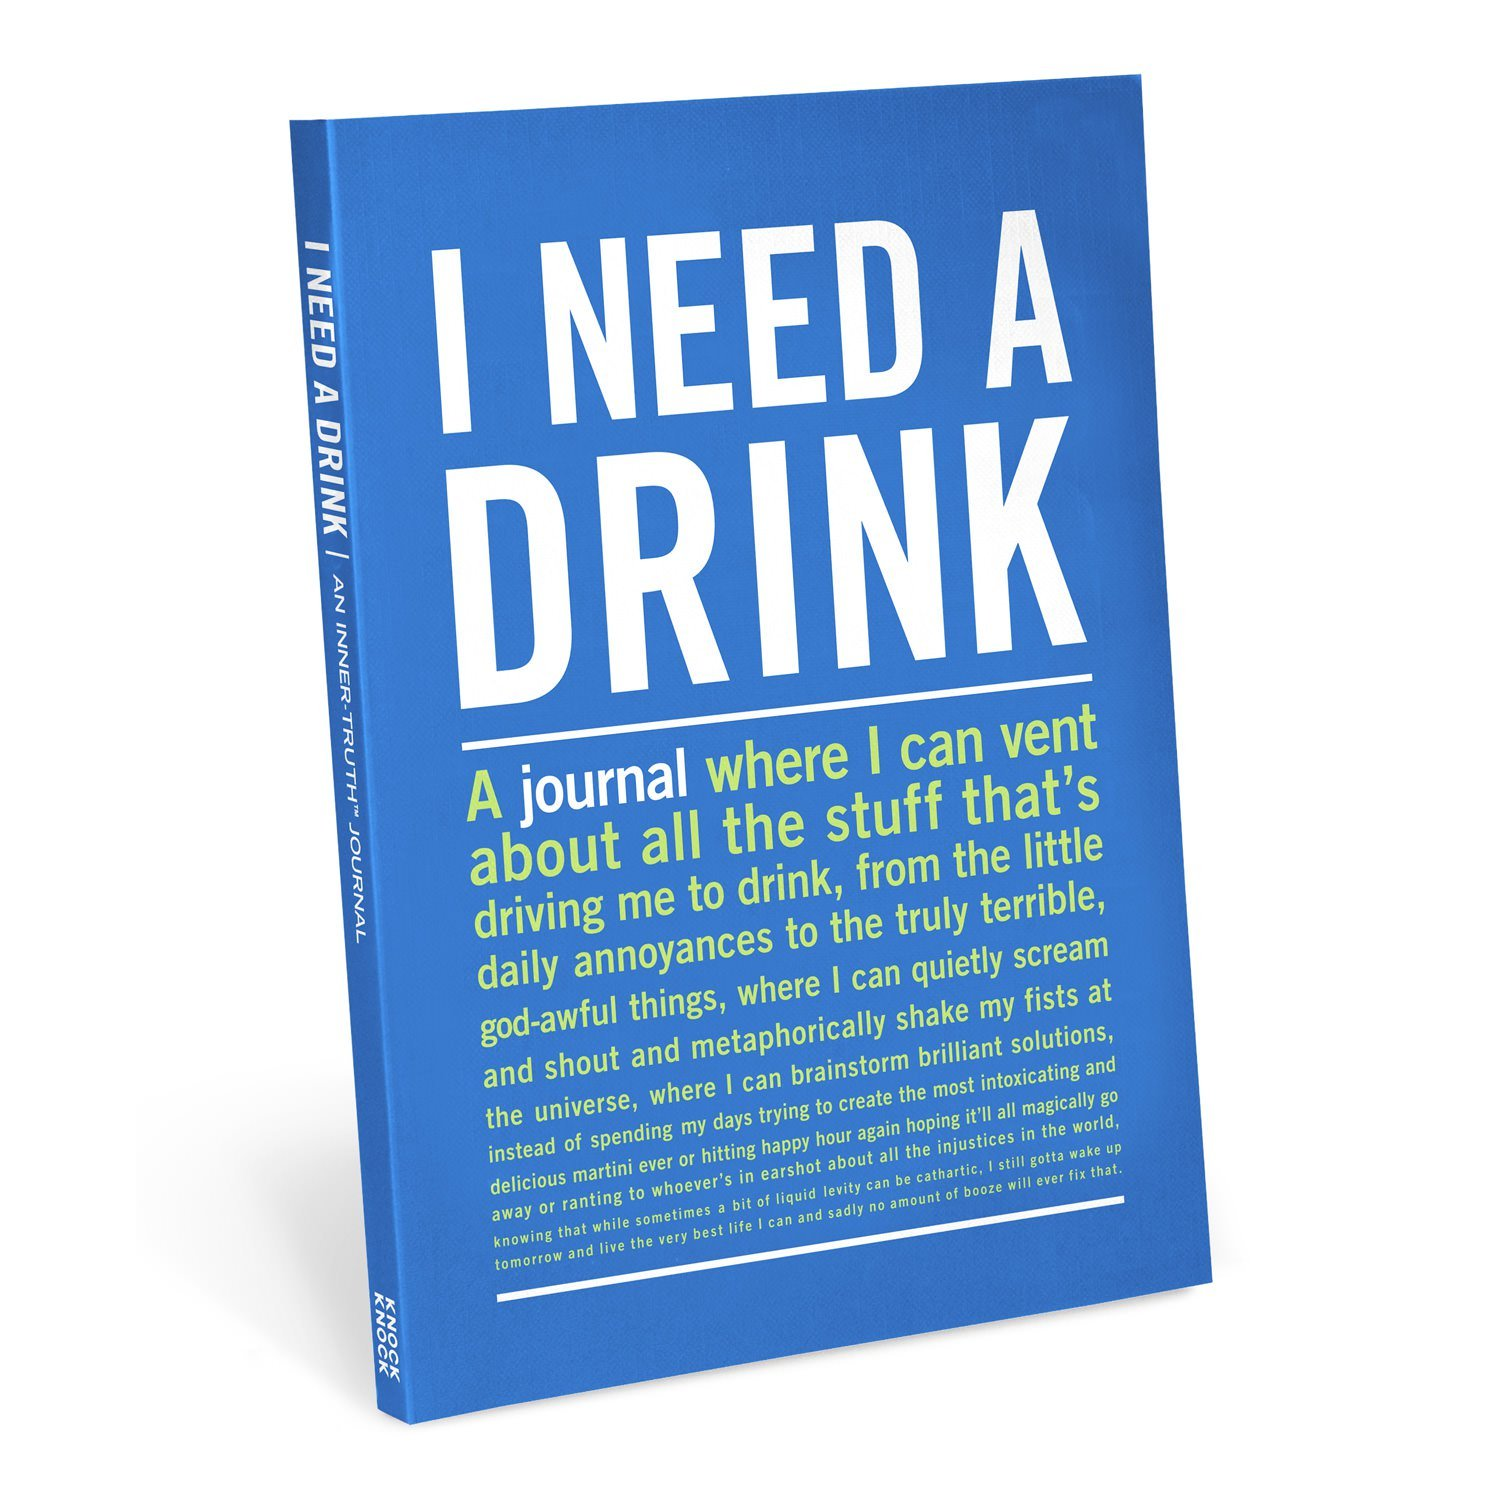 I-need-a-drink-inner-truth-journal-knock-knock